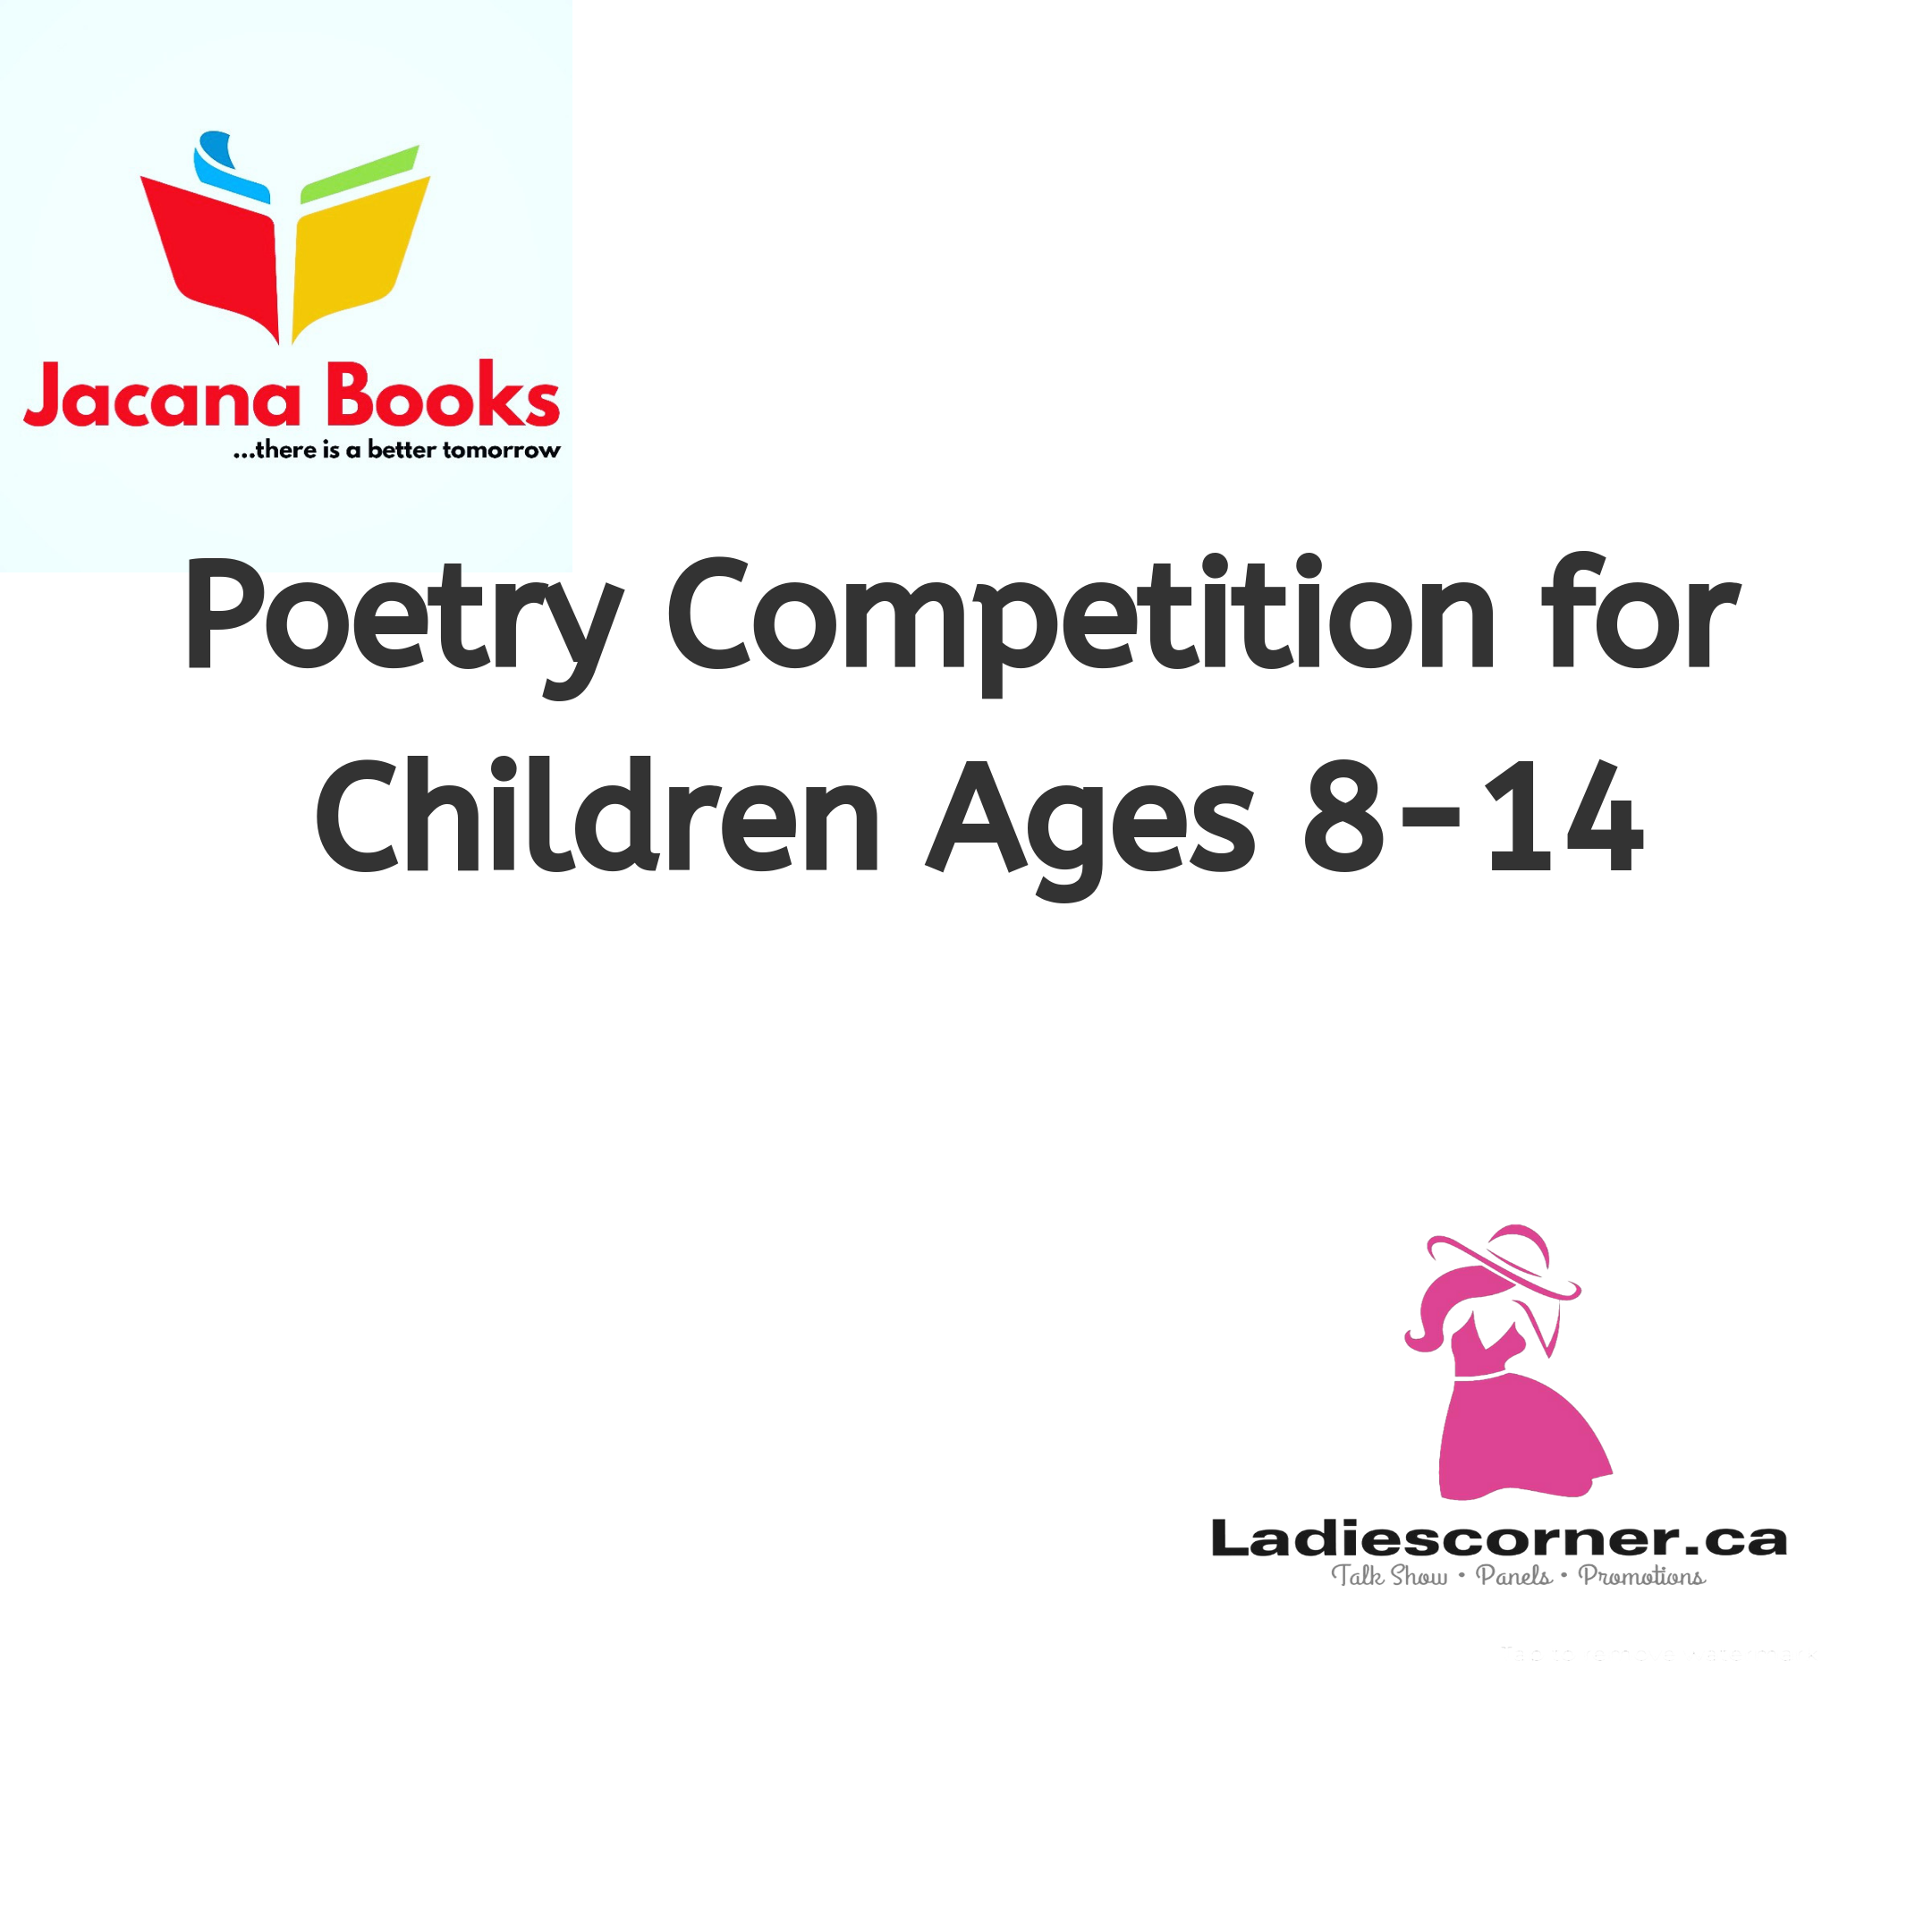 Ladies Corner Canada Nbsp And Jacanabooks Ca Nbsp Announce A Poetry Writing Competition For Children Age Writing Competition Poetry Competitions Writing Poetry